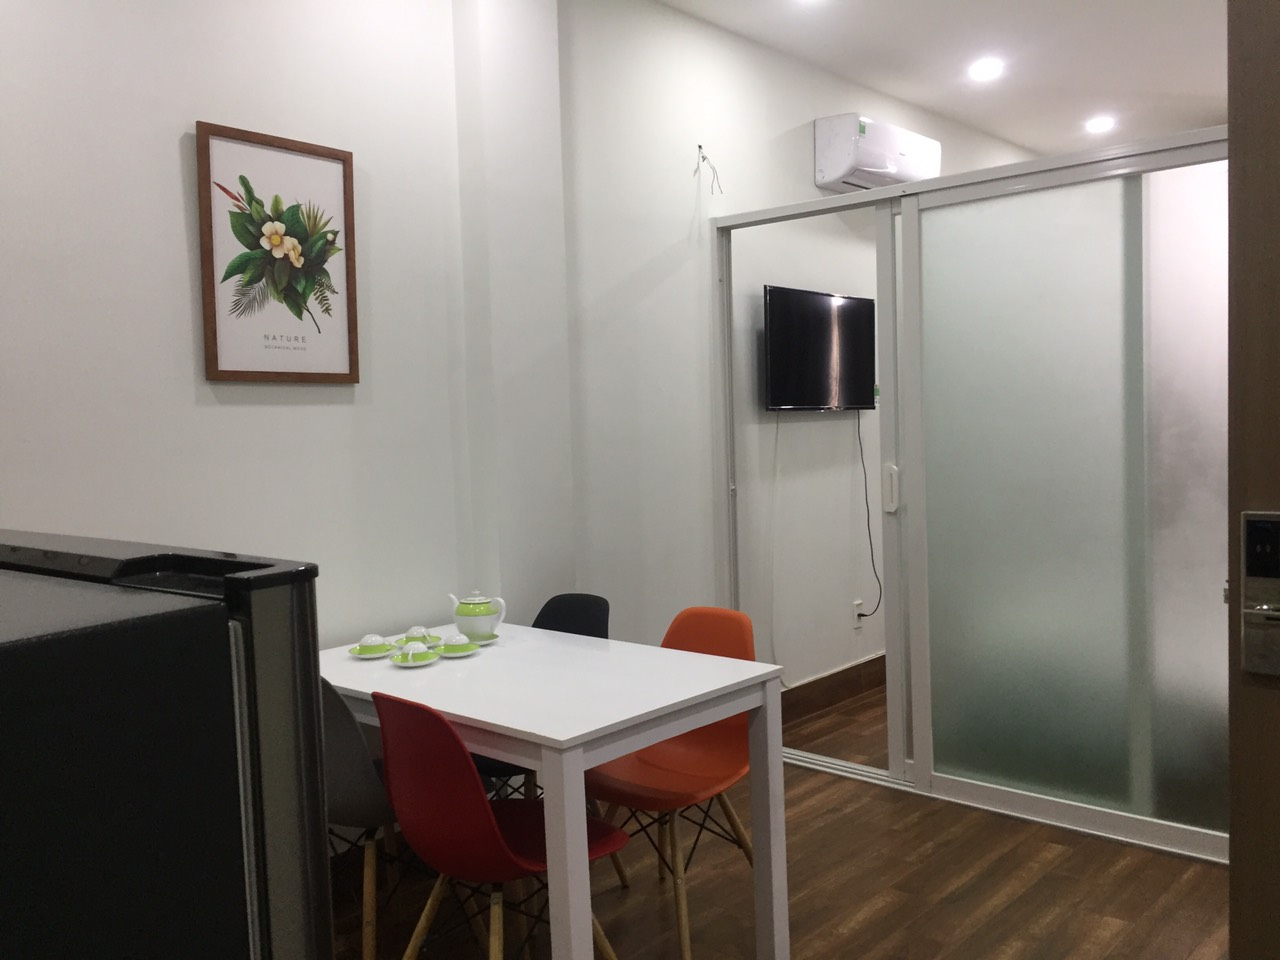 serviced apartment for rent in binh thanh district hcmc serviced apartment for rent in binh thanh district hcmc BT99138 (1)